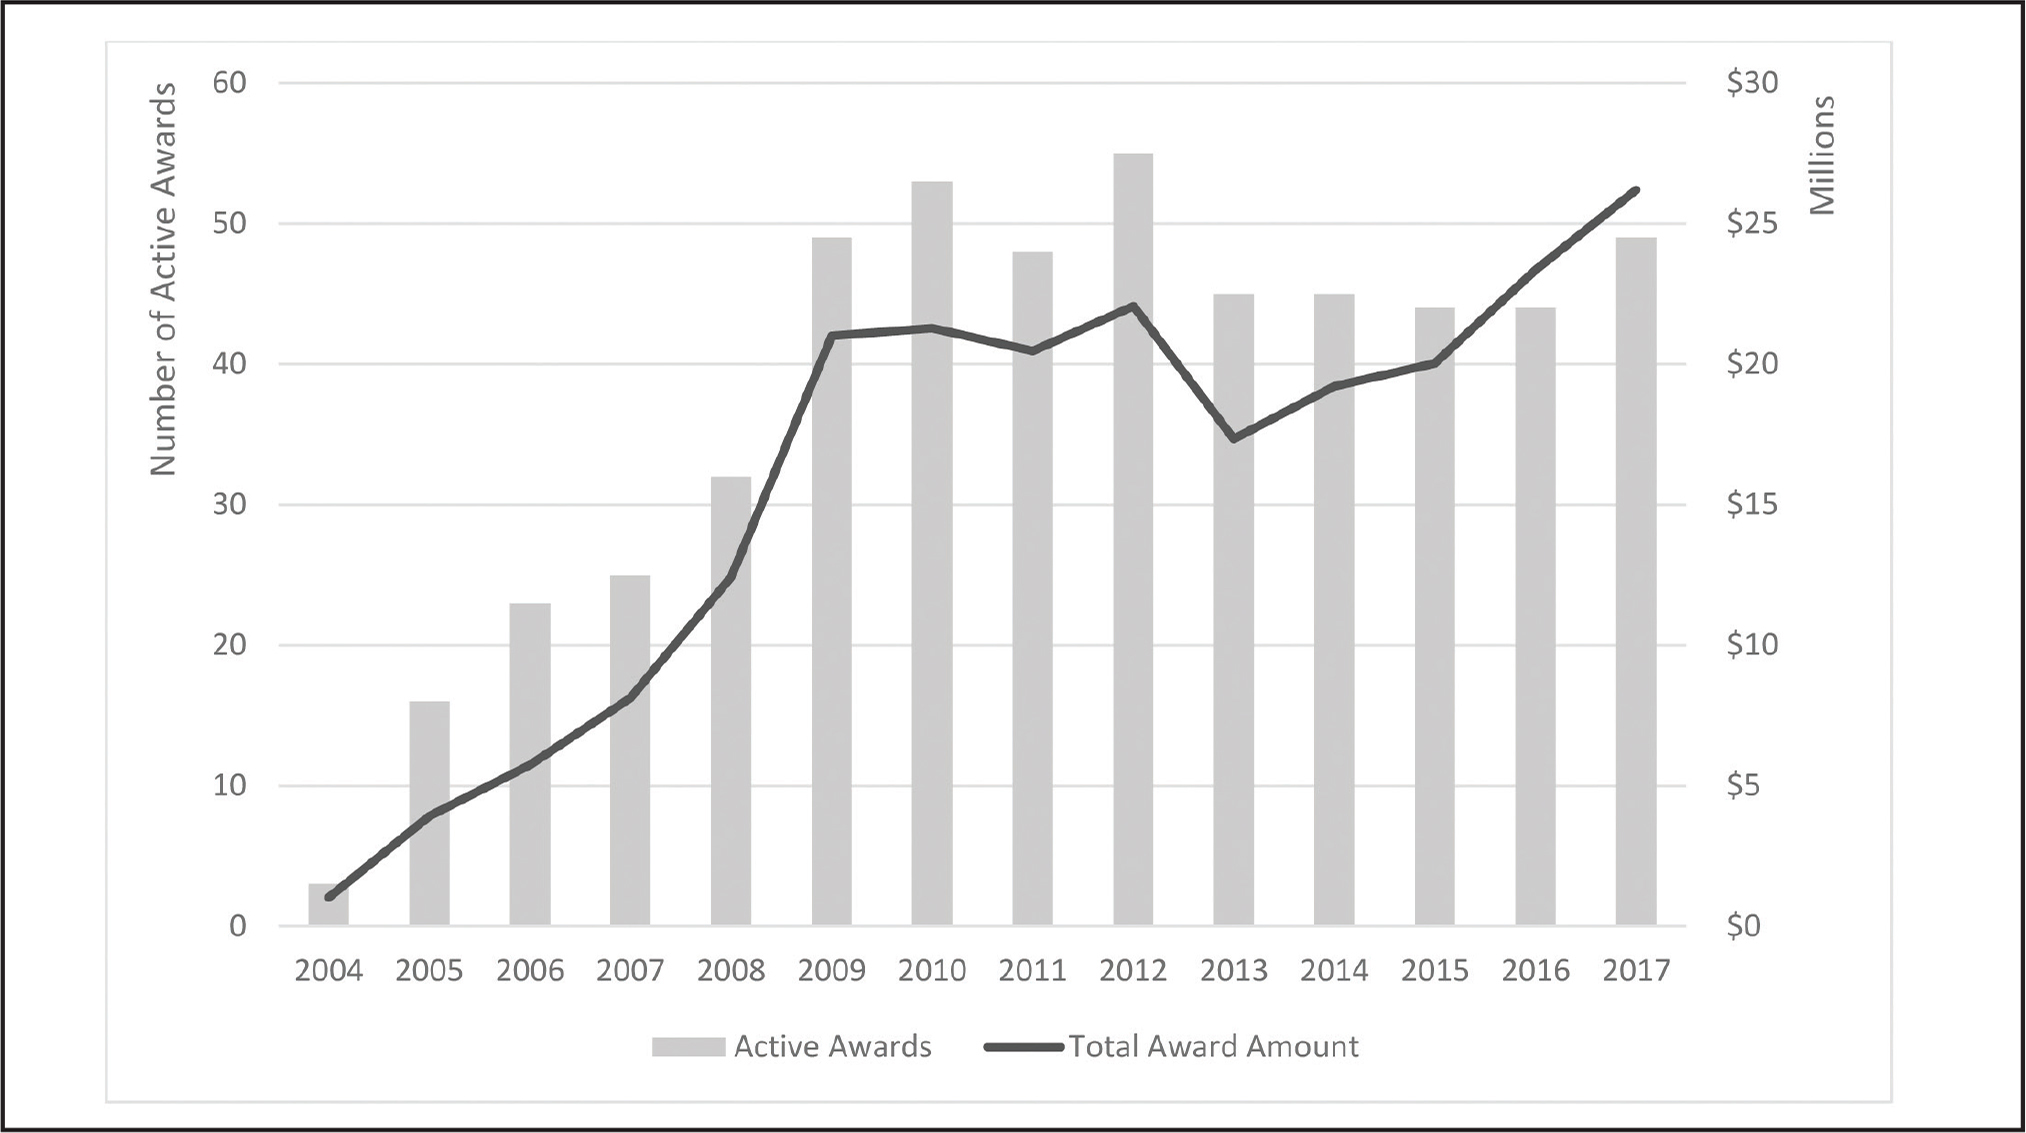 National Institutes of Health total award amounts and number of active awards for health literacy research grants in prevention from fiscal year 2004 to fiscal year 2017 (N = 192). The bars on the graph represent active grants in each year of the grant award period, and the line shows the award amounts for each year a grant is active.